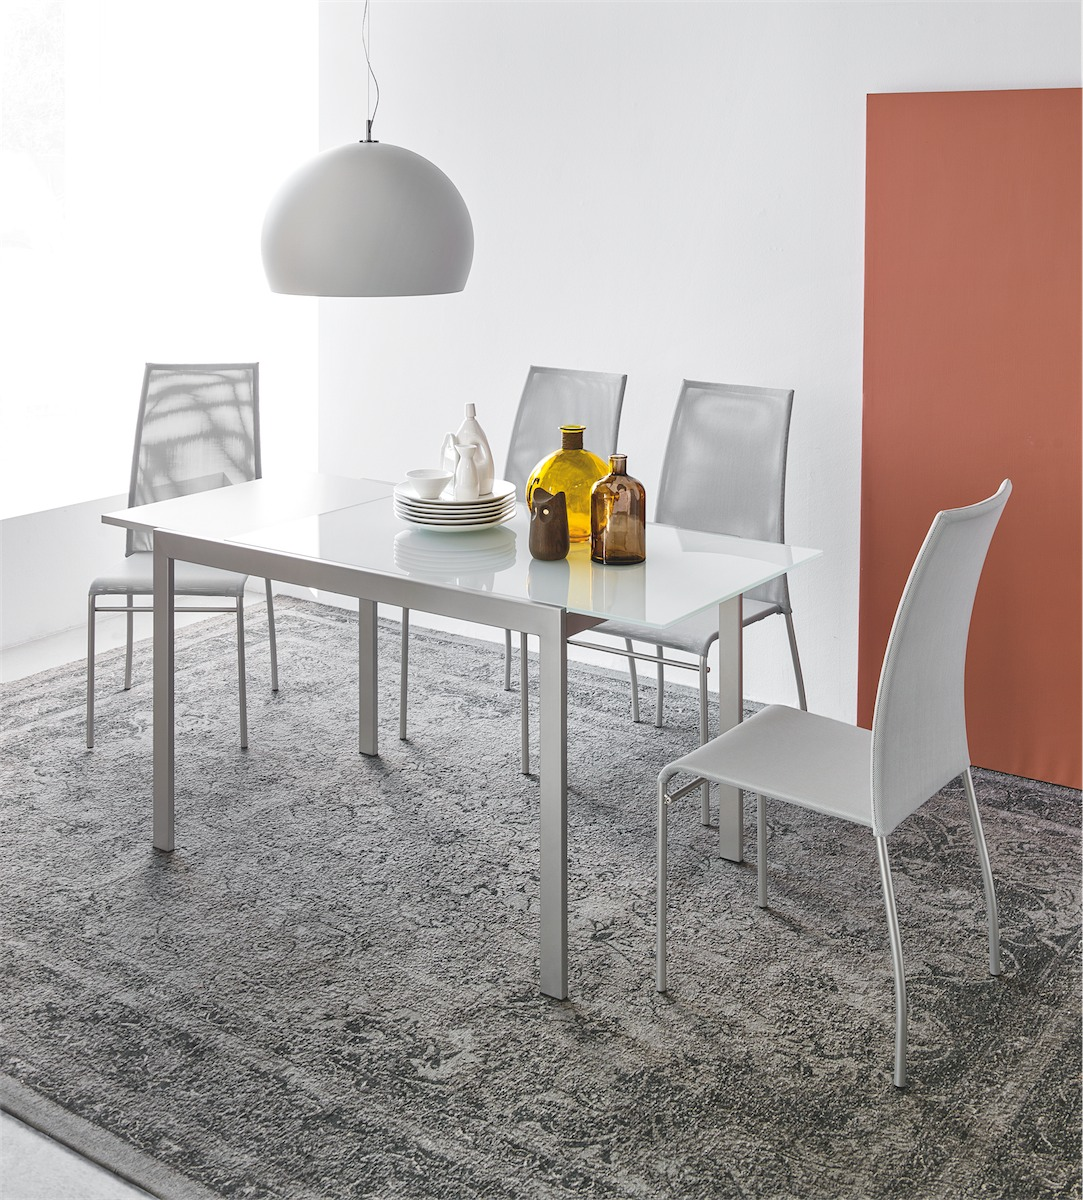 Tavolo aladino 120 vetro connubia by calligaris linea for Catalogo calligaris